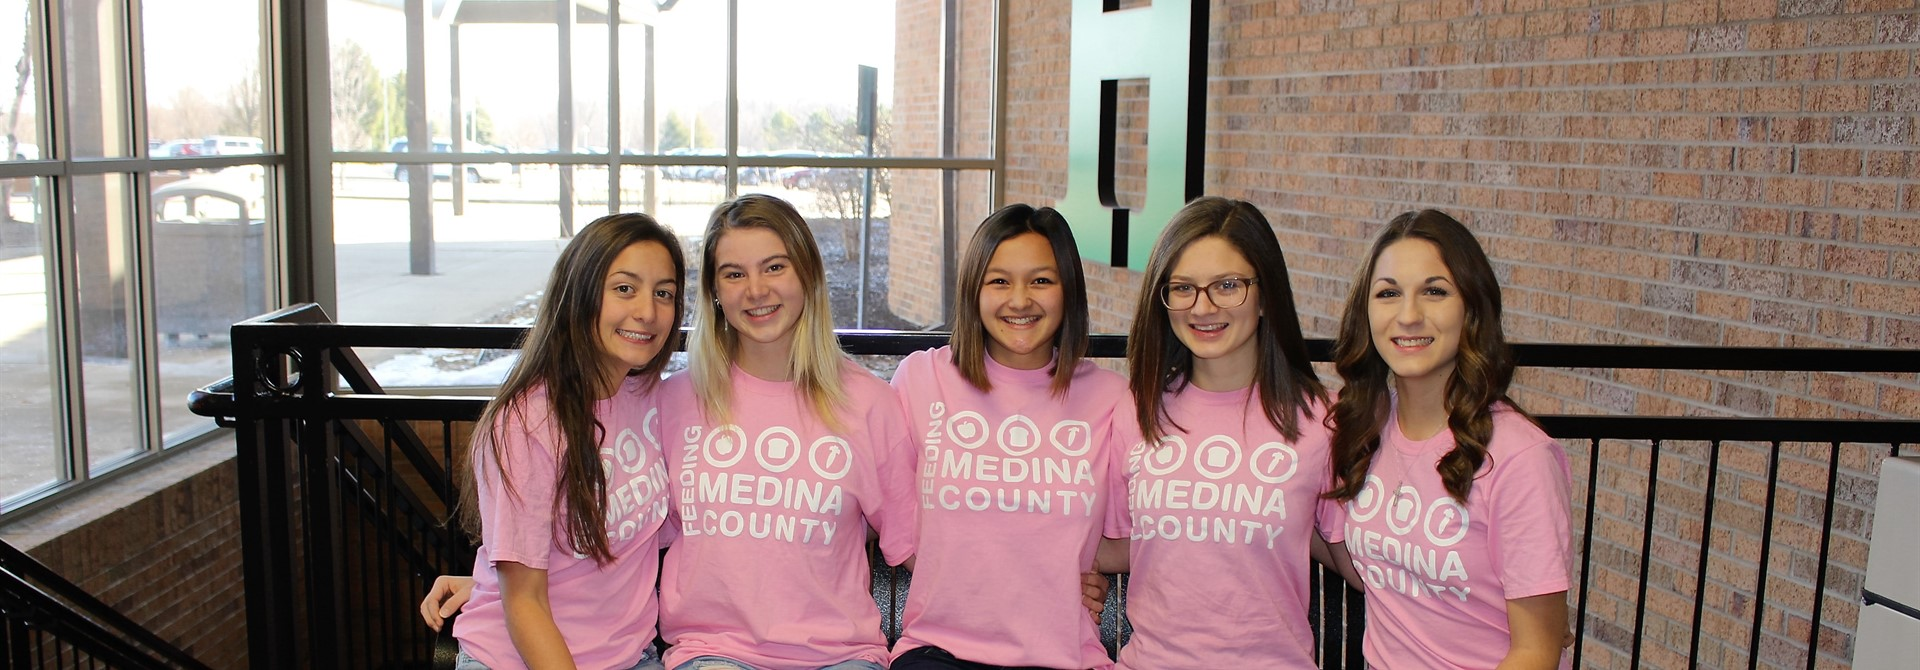 From left Annamarie DiGiacobbe, Kaila Oberhaus, Bethany Yu, Brianna Kean and Olivia Severyn.